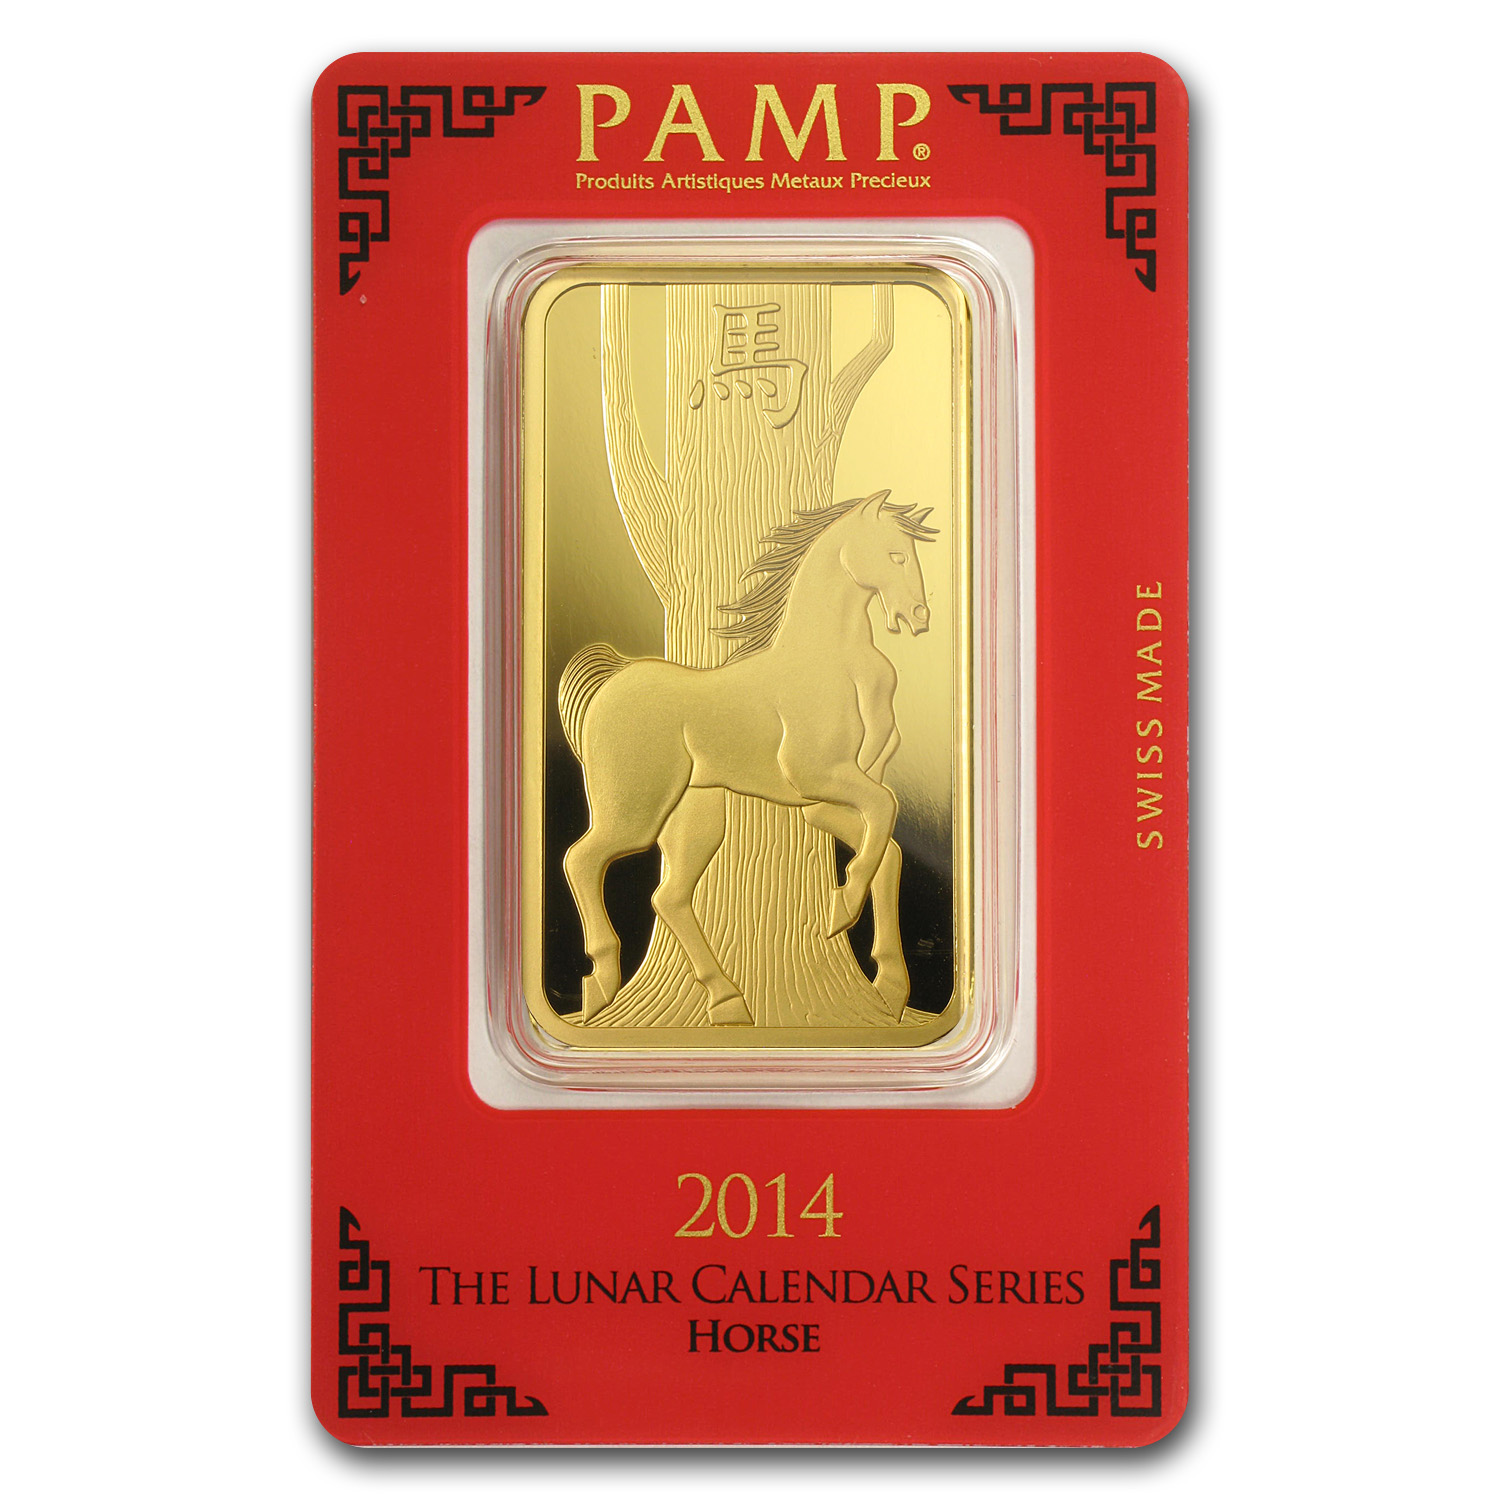 100 Gram Gold Bar For Sale One Hundred Gram Pamp Suisse